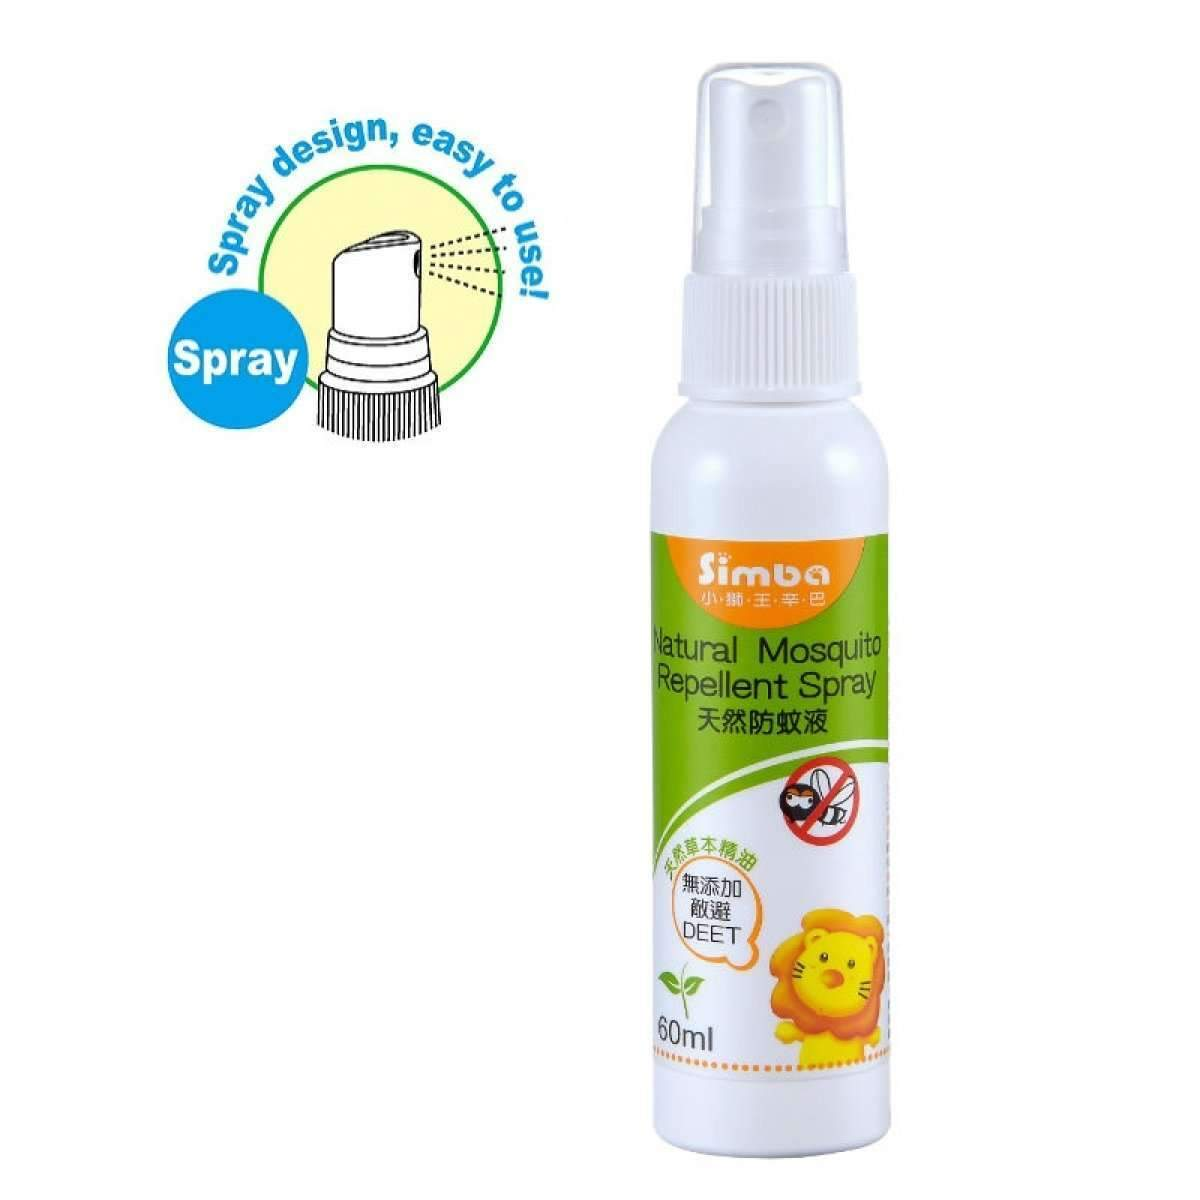 Simba Mosquito Natural Repellent Spray Head (60ml)